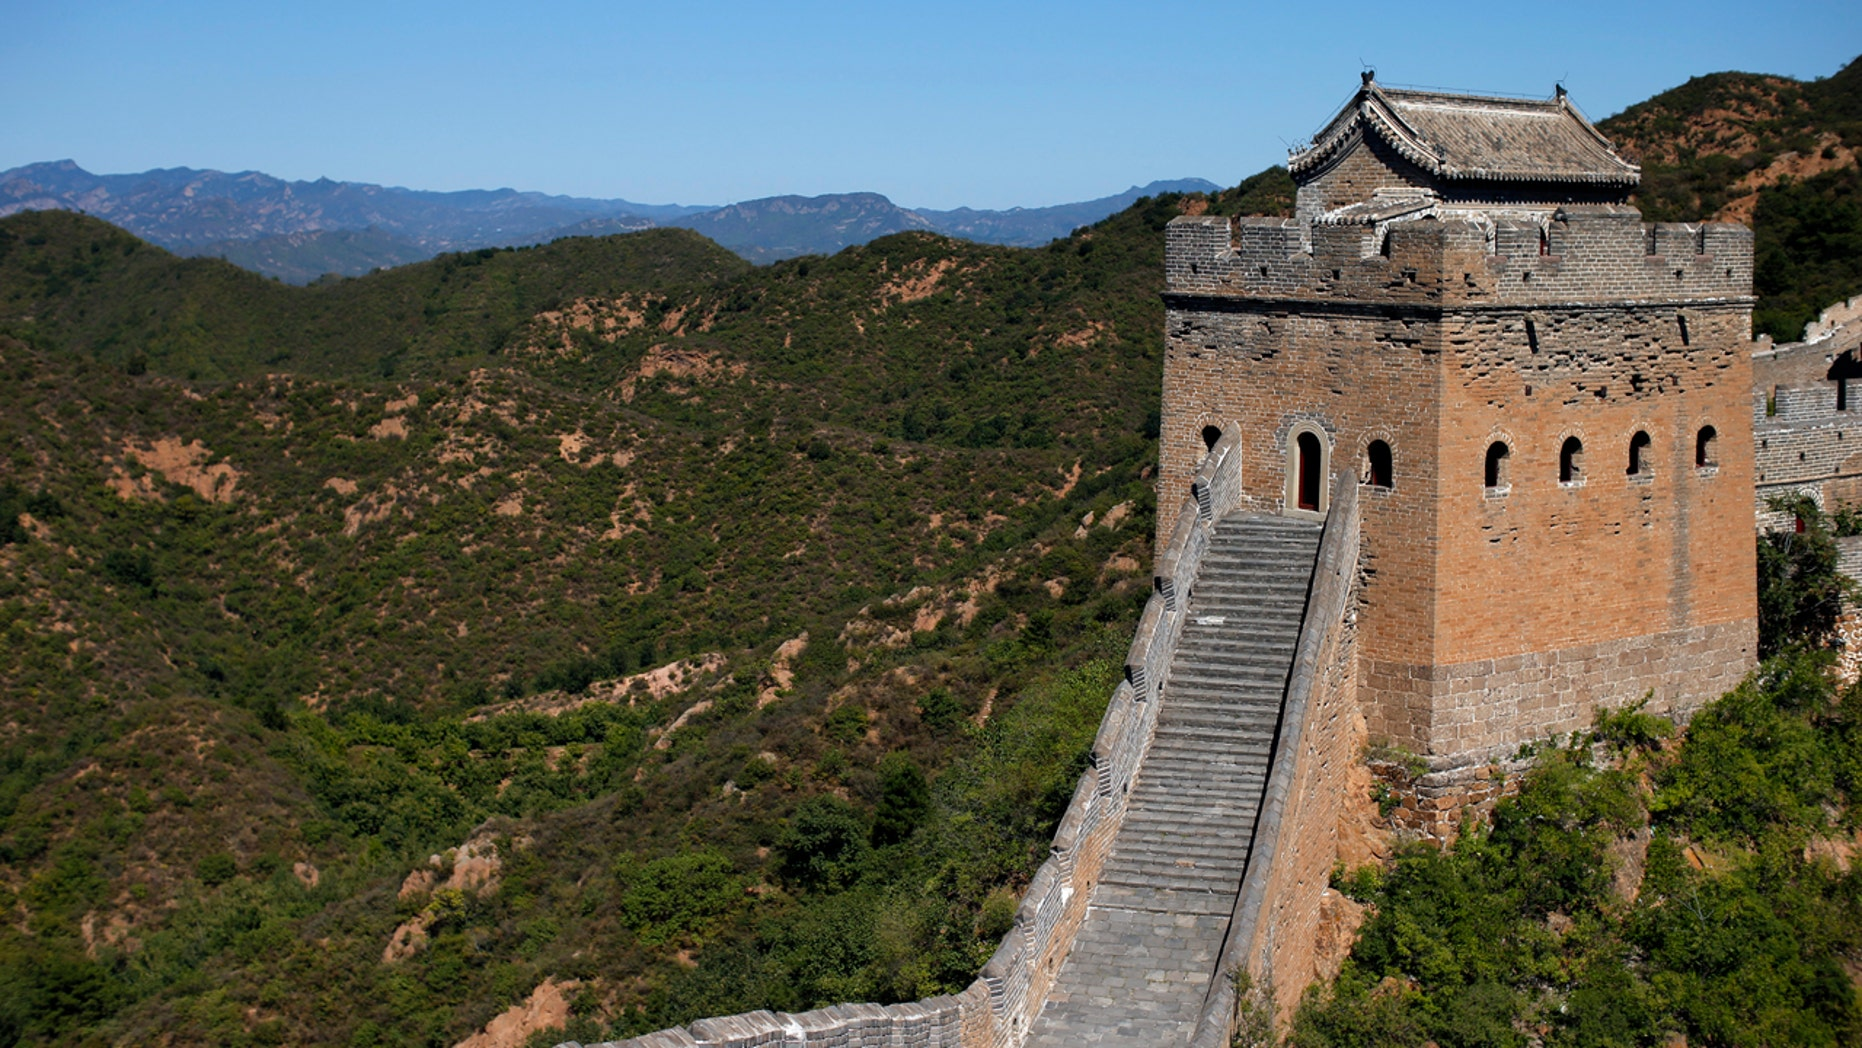 Visitors can climb the Great Wall but it's not devised to carve your name into the ancient stone.